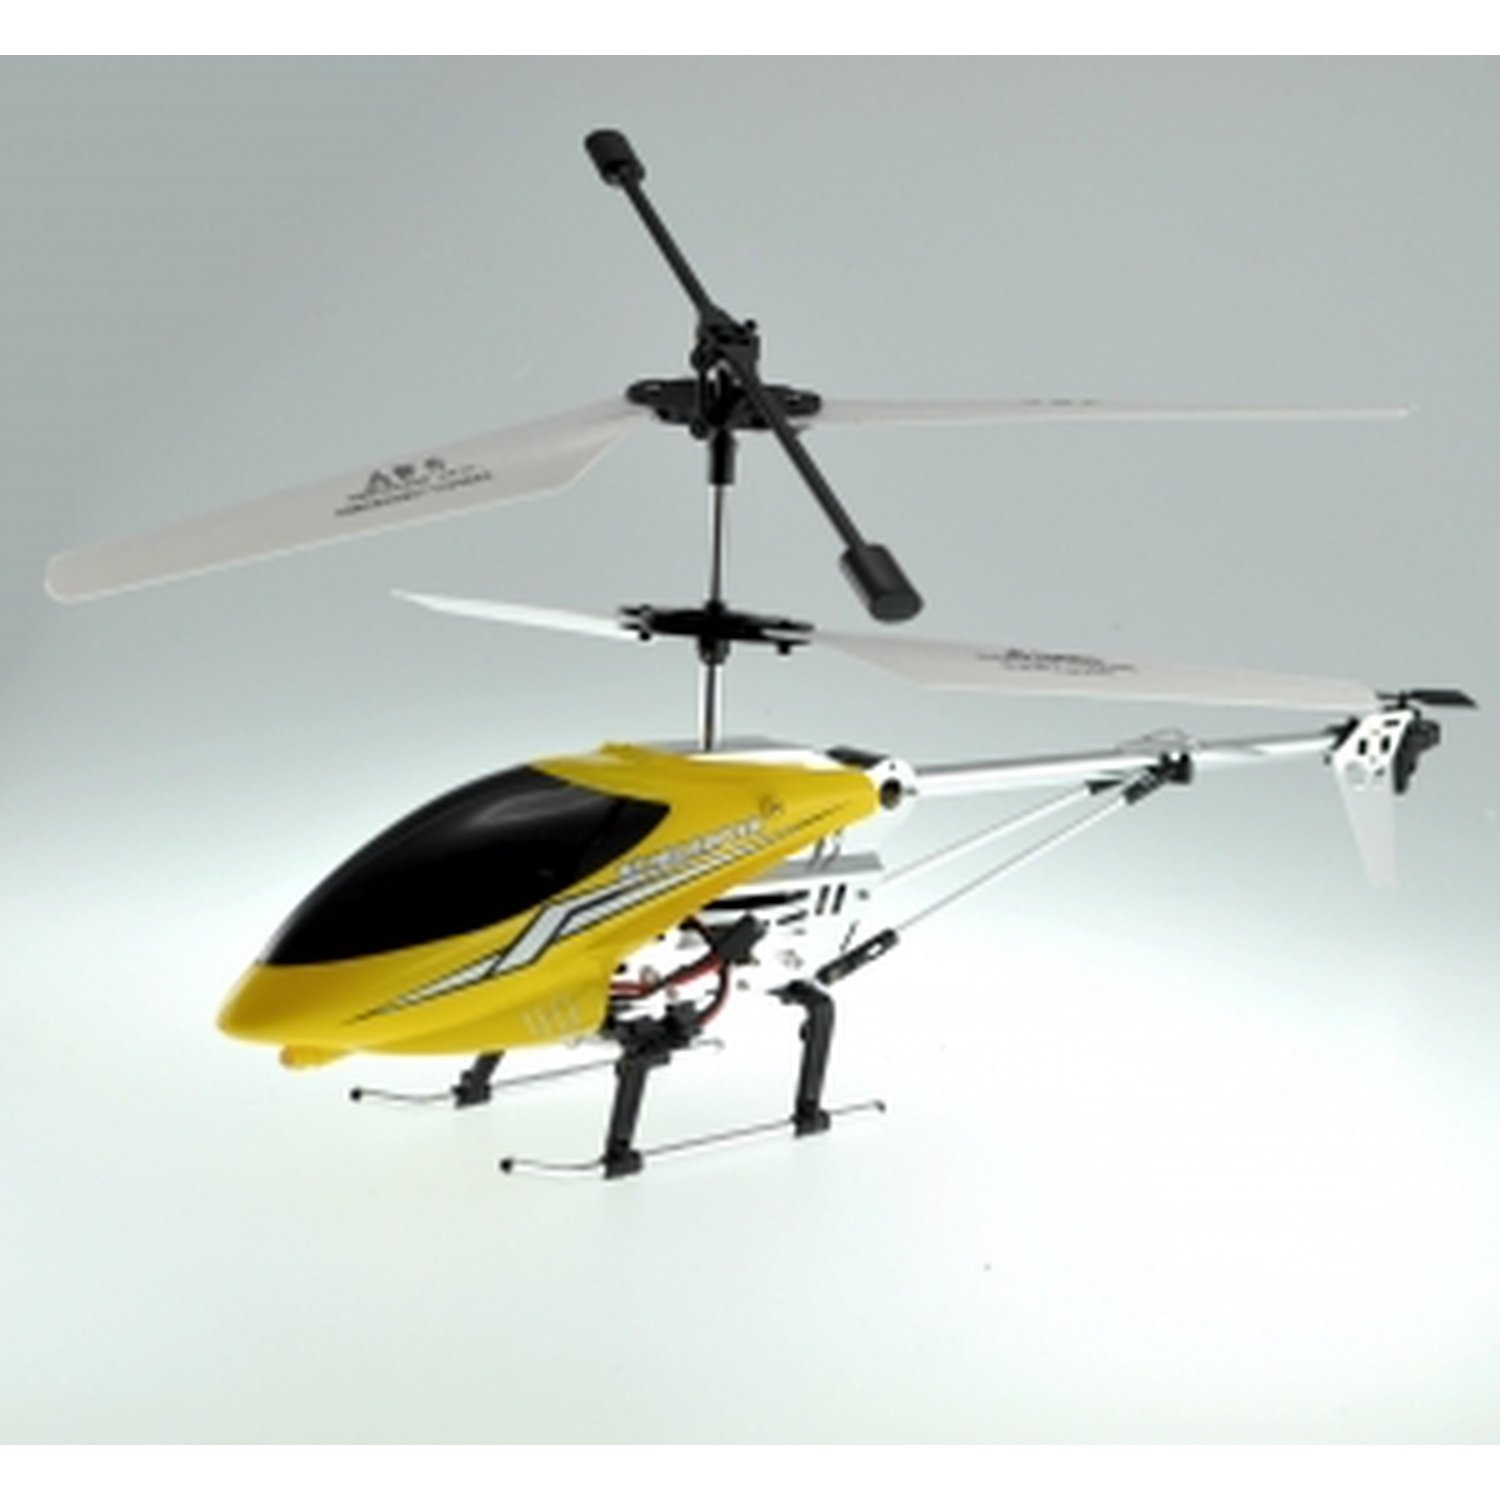 RC HELICOPTER MODEL CF009 (YELLOW), 3.5 CHANEL, GYROSCOPE, METAYELLOWIC AMETALLIC BLU